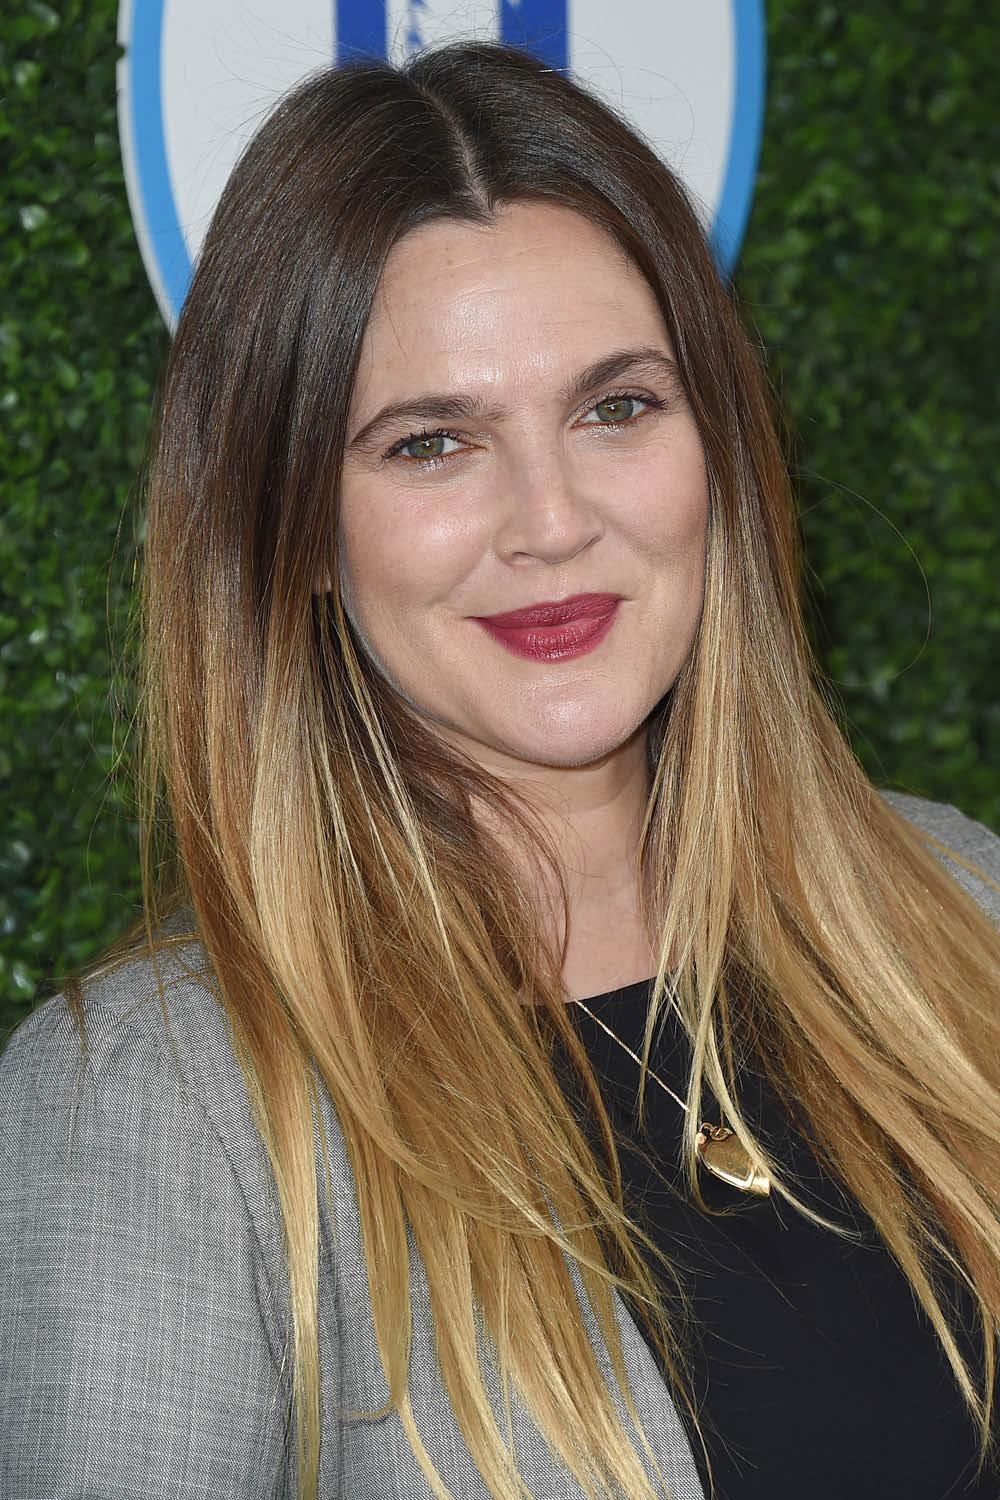 mechas californianas drew barrymore. ¿Qué son las mechas californianas?